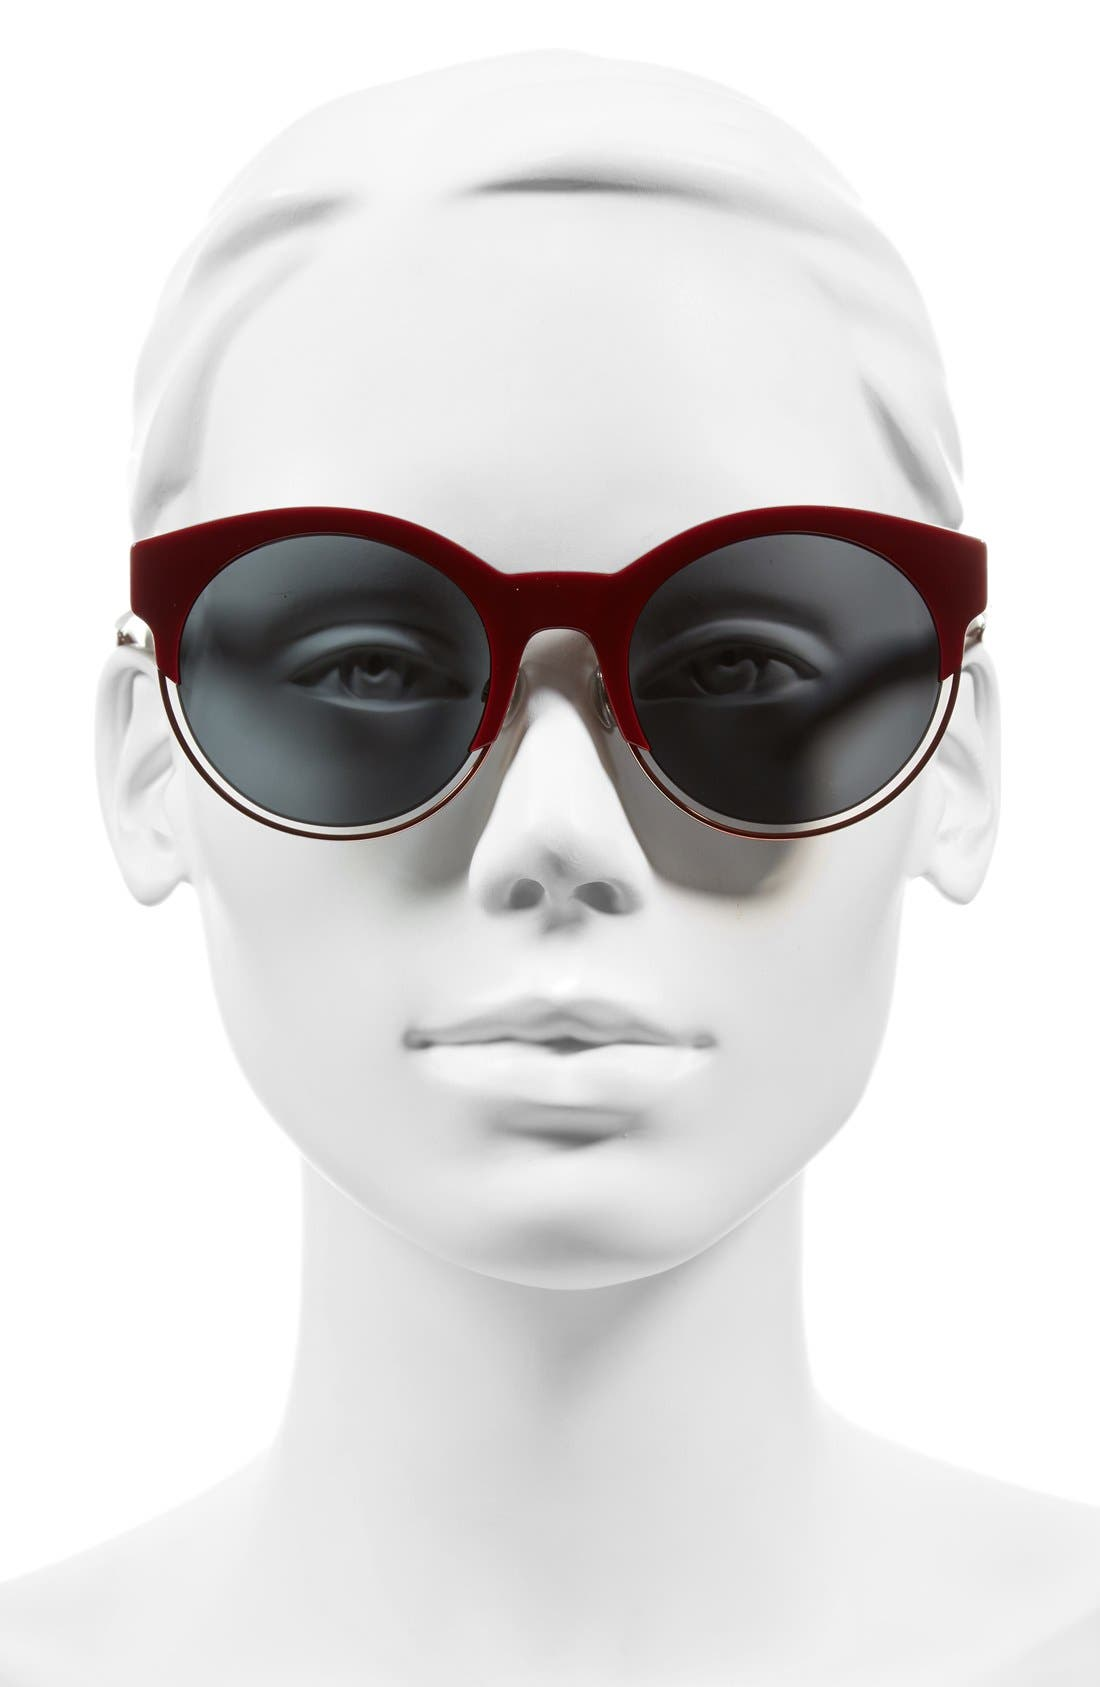 Siderall 1 53mm Round Sunglasses,                             Alternate thumbnail 17, color,